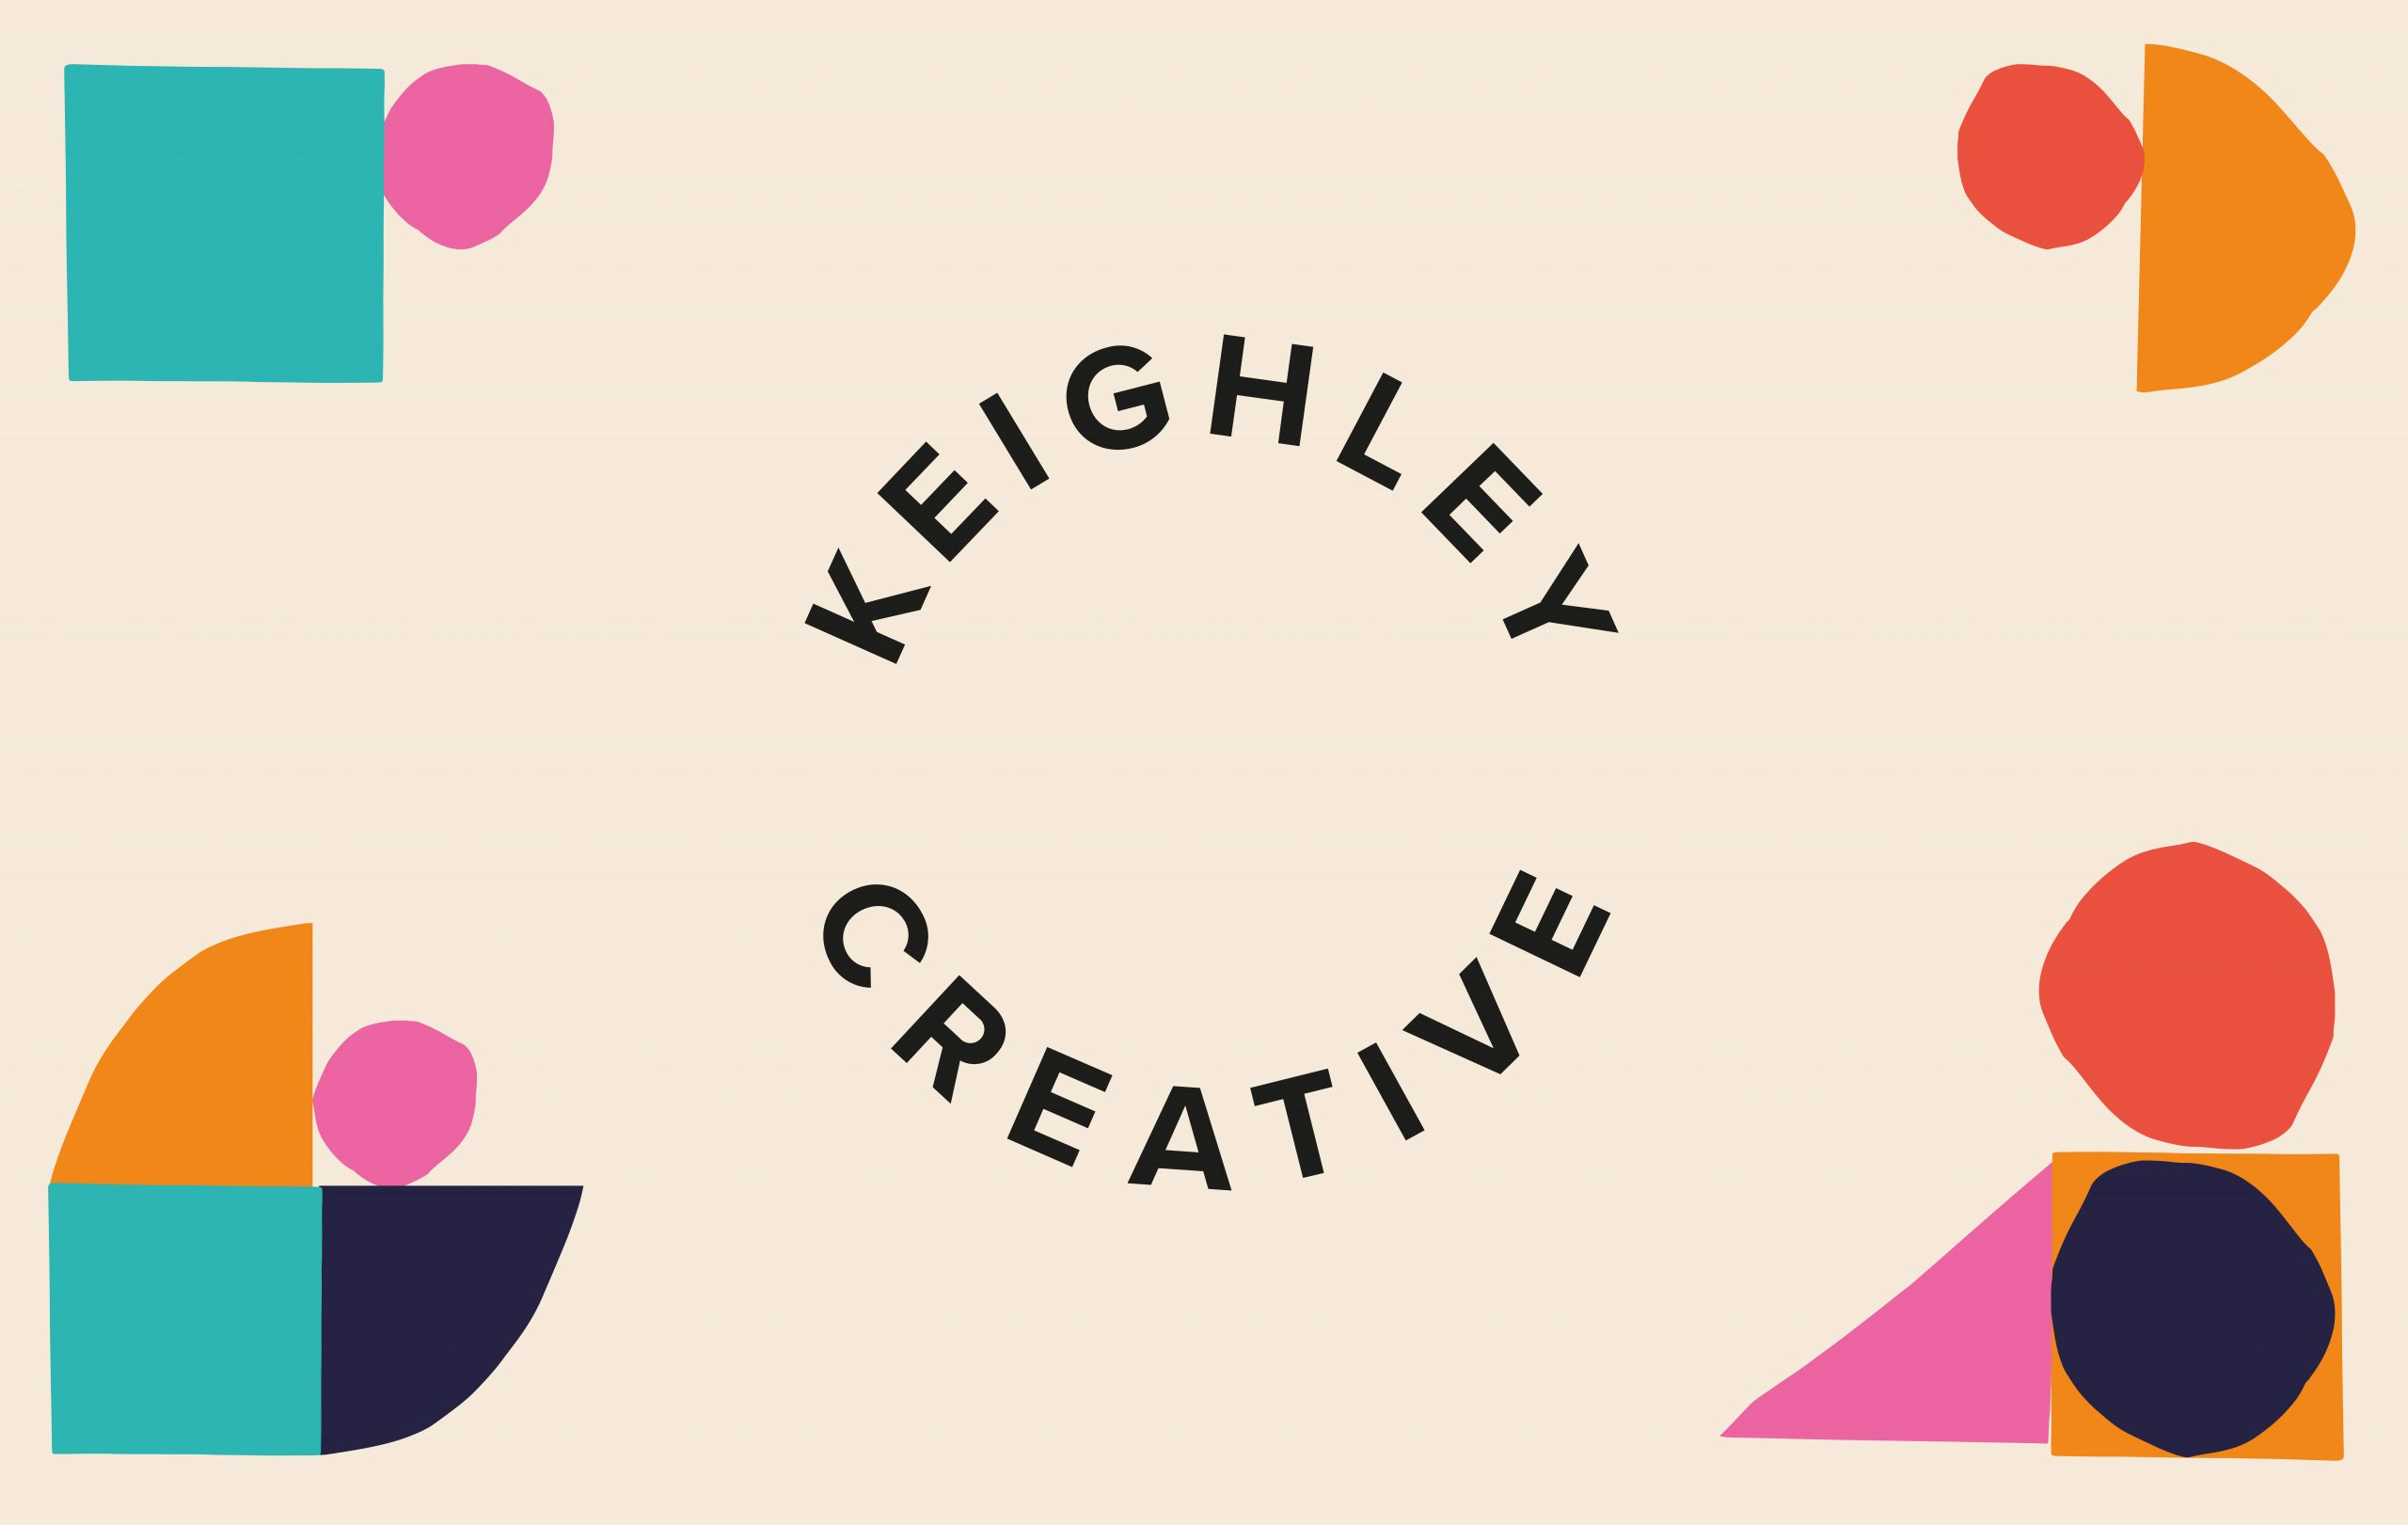 Keighley Creative logo and brand design